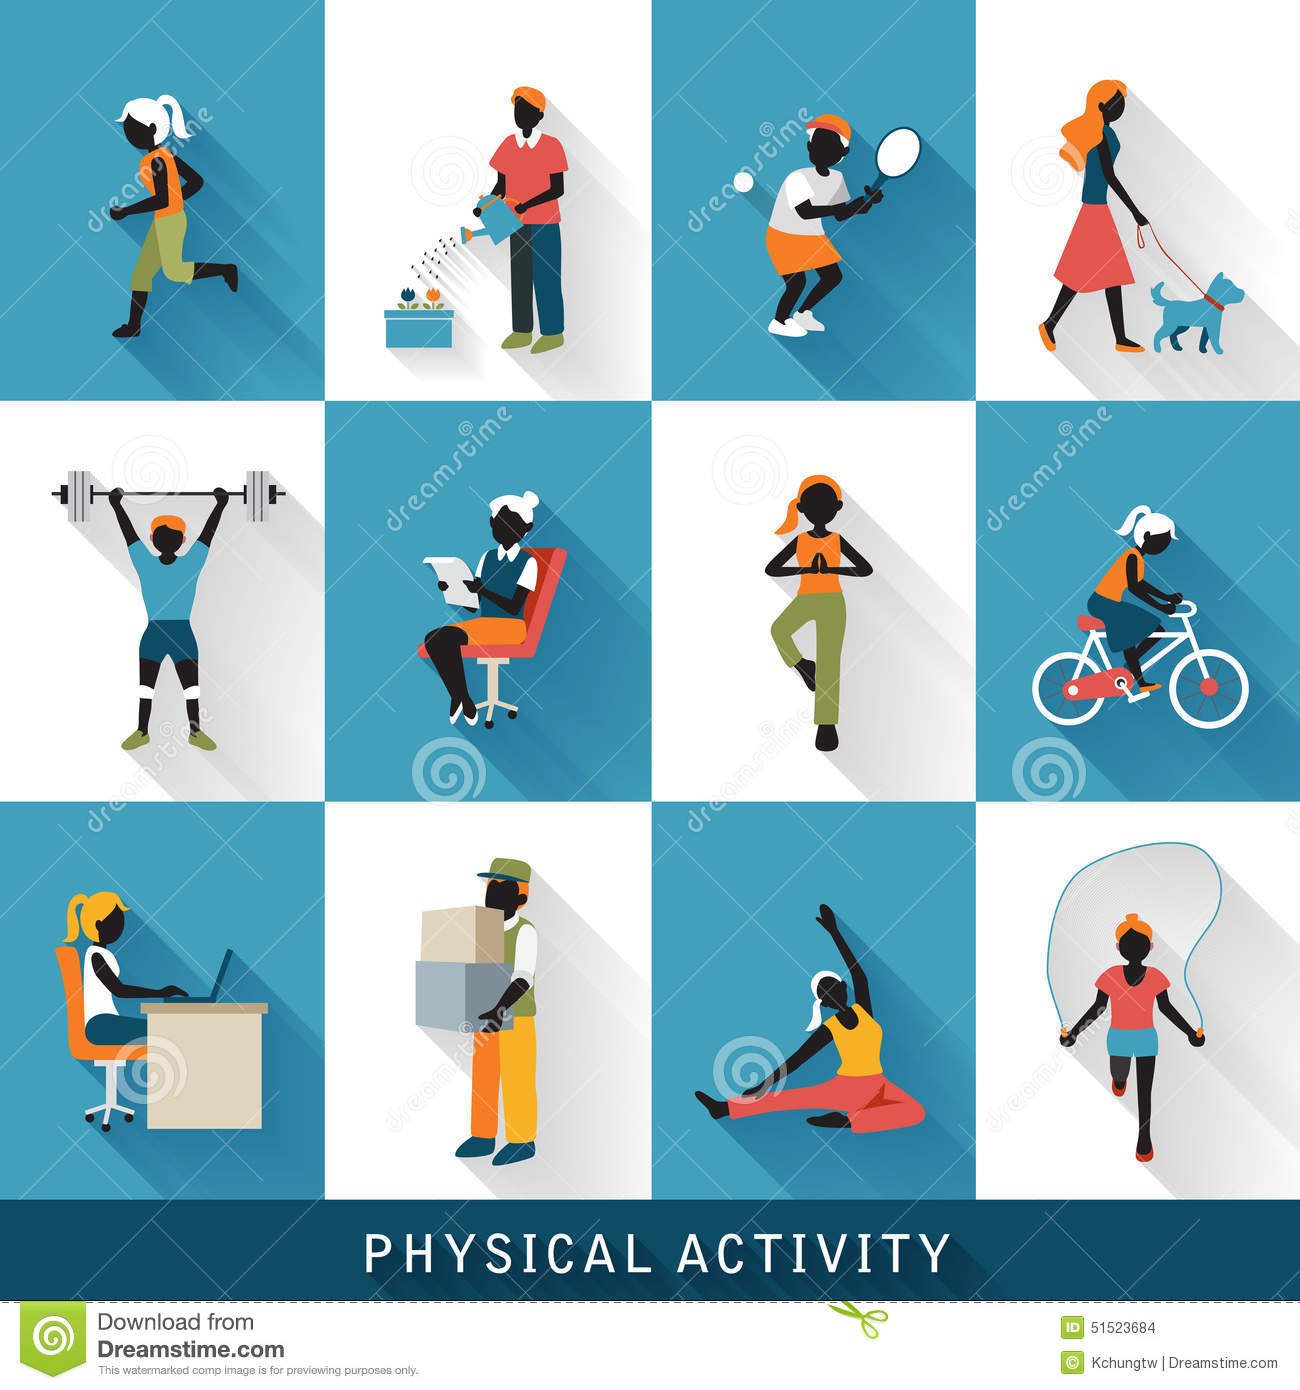 ... physical activity icons set isolated over blue and white background